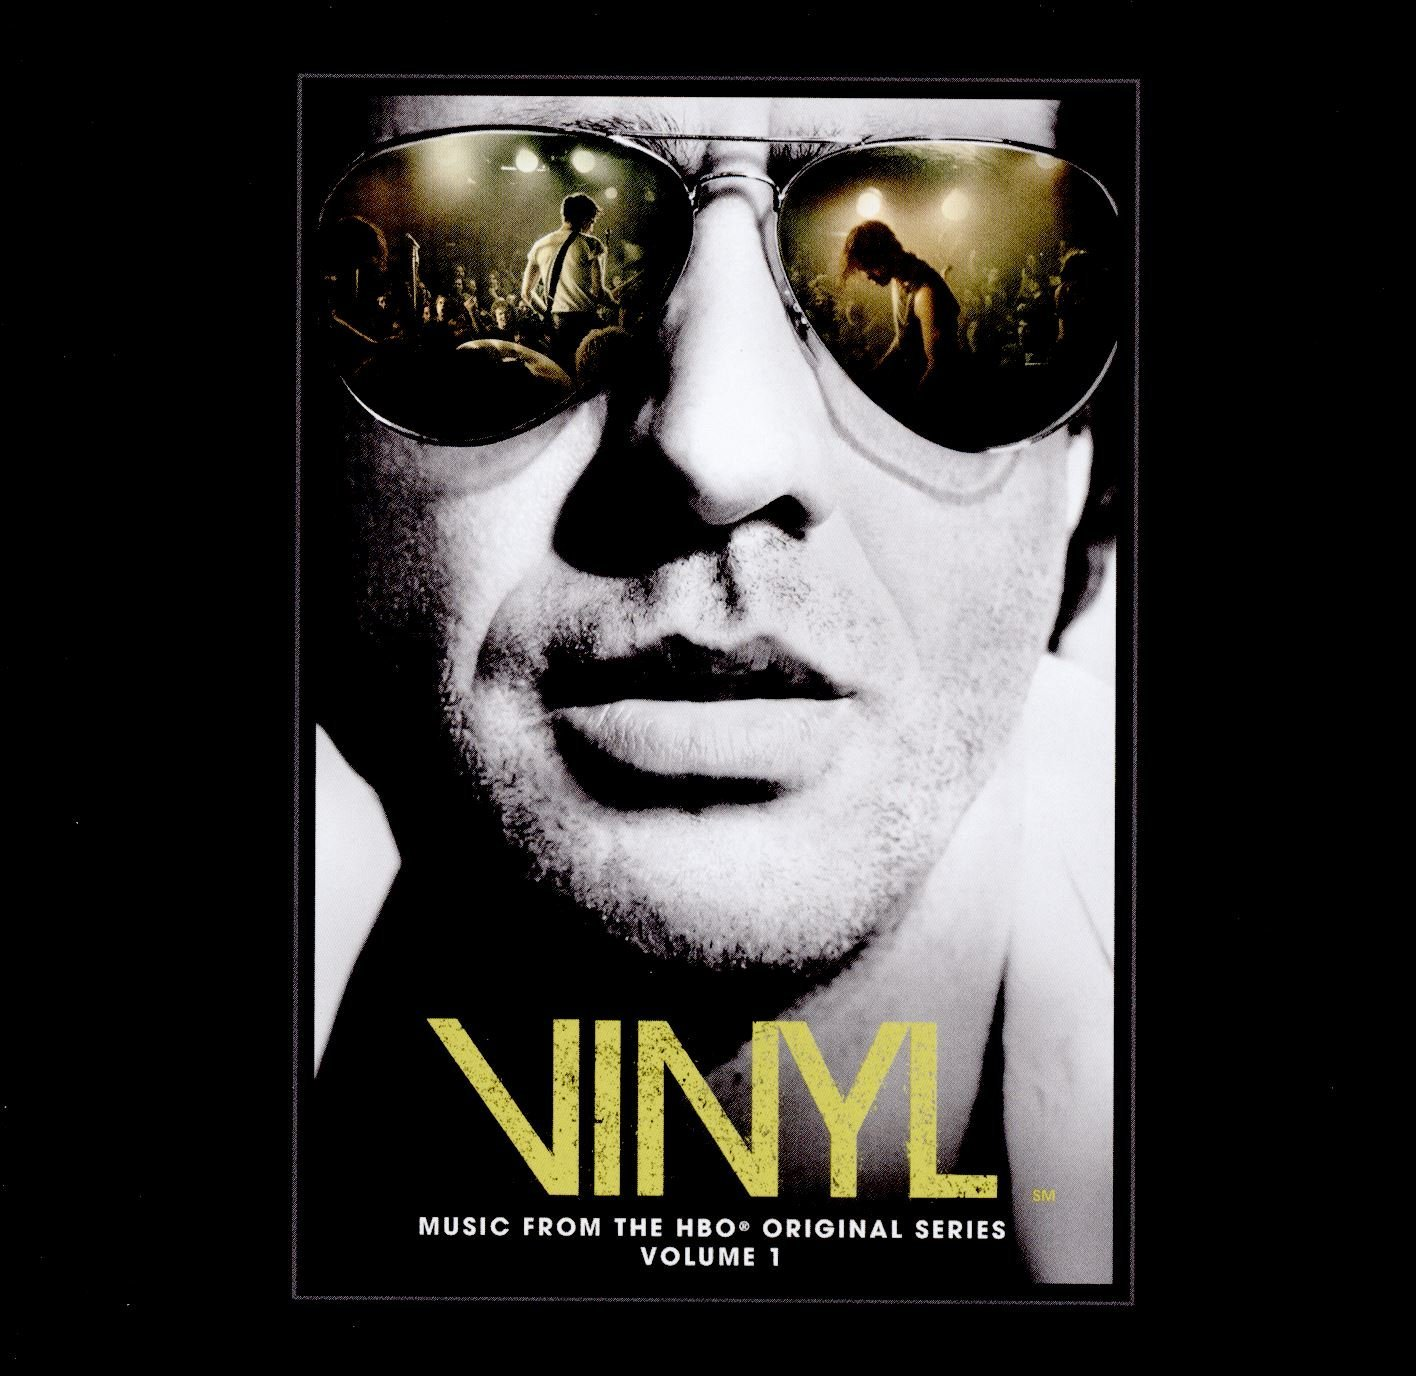 Vinyl - Music from the Hbo Original Series Vol.1